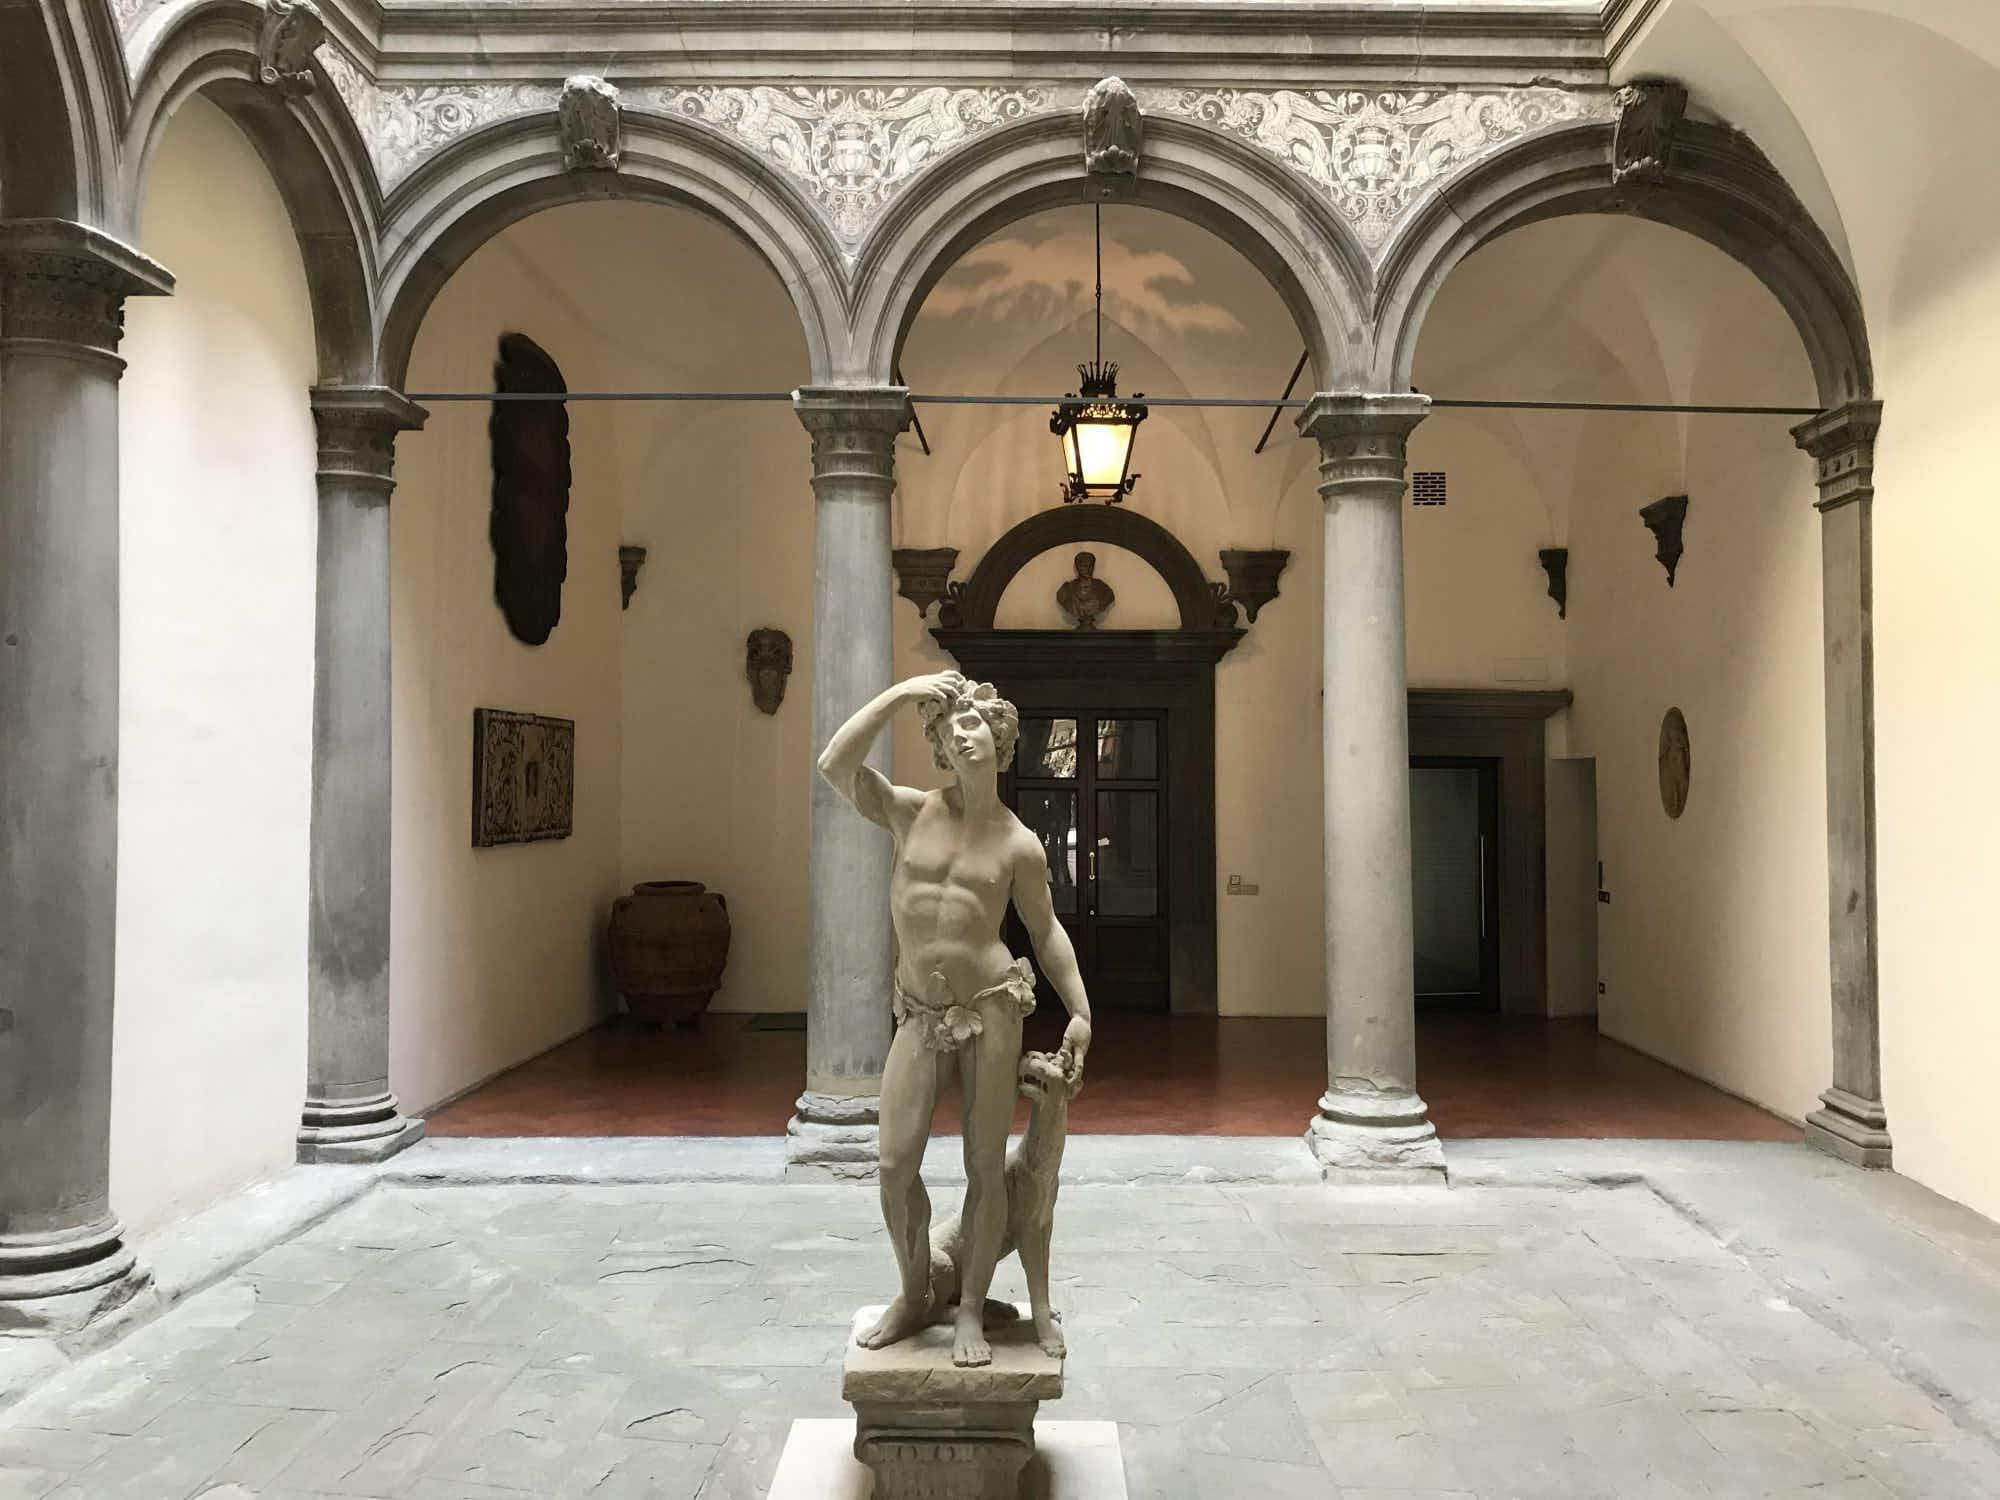 Take a peek at the new contemporary art space in the heart of Florence